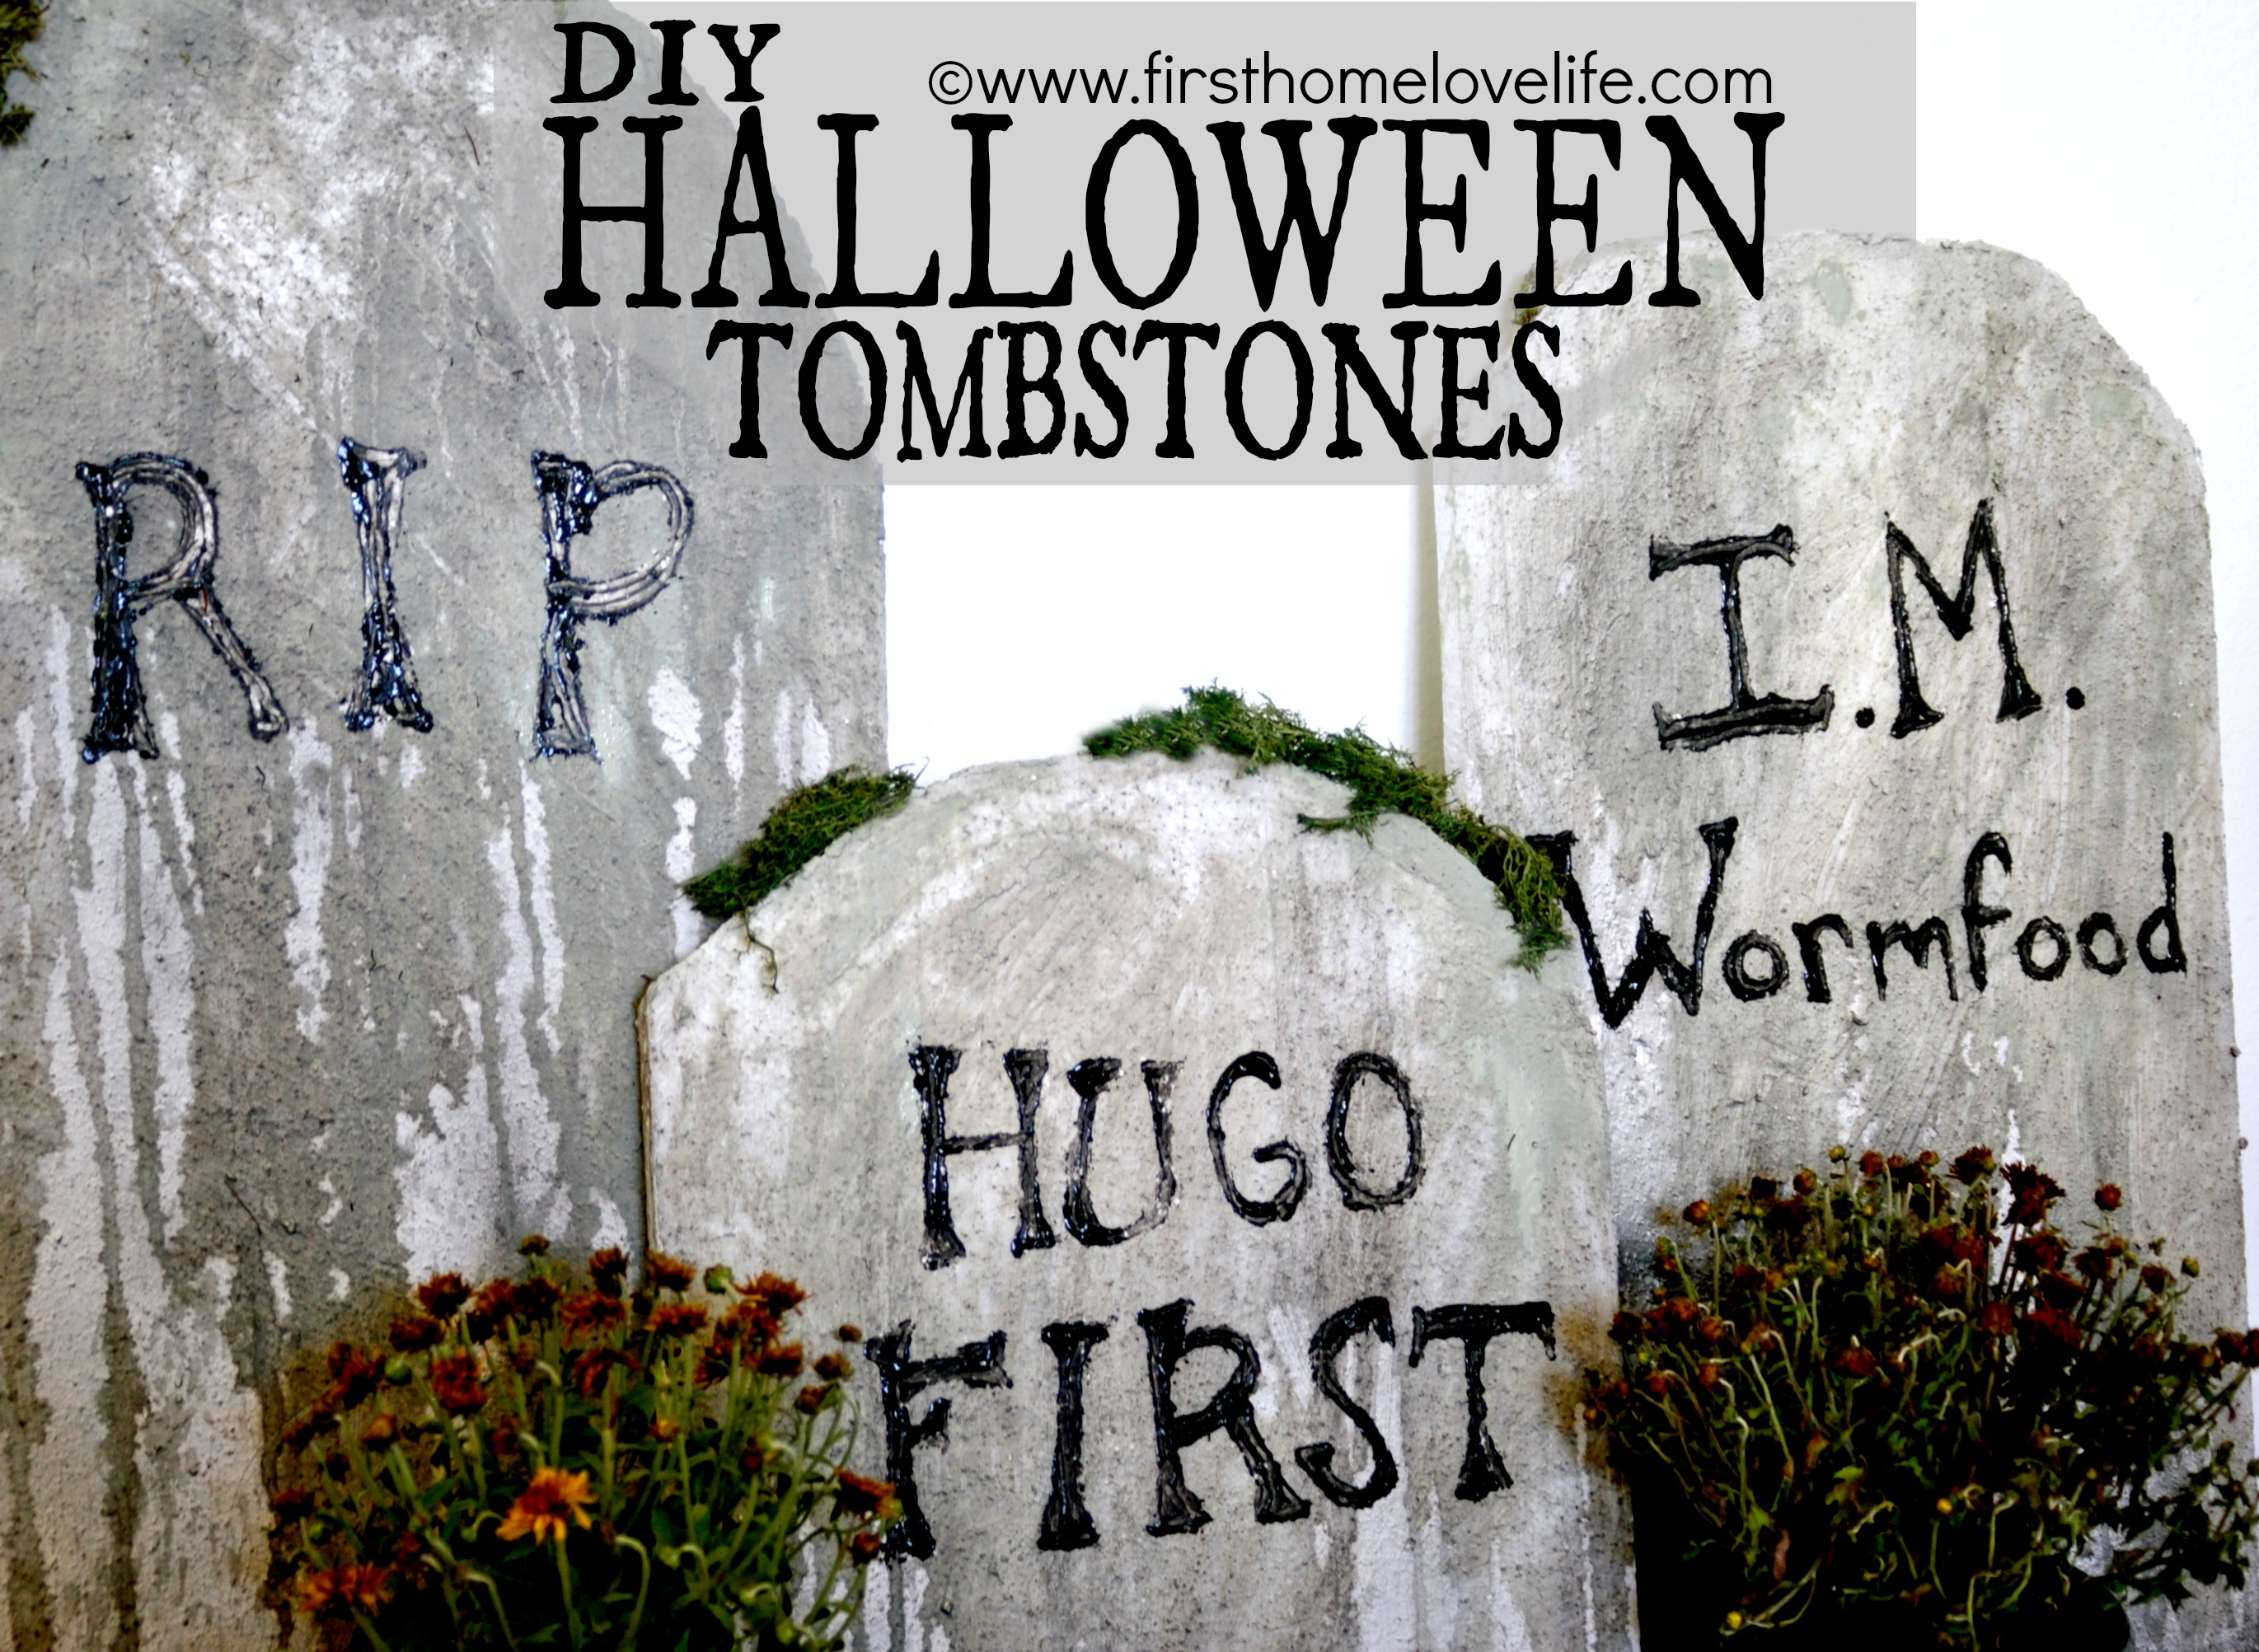 Diy Halloween Tombstones First Home Love Life